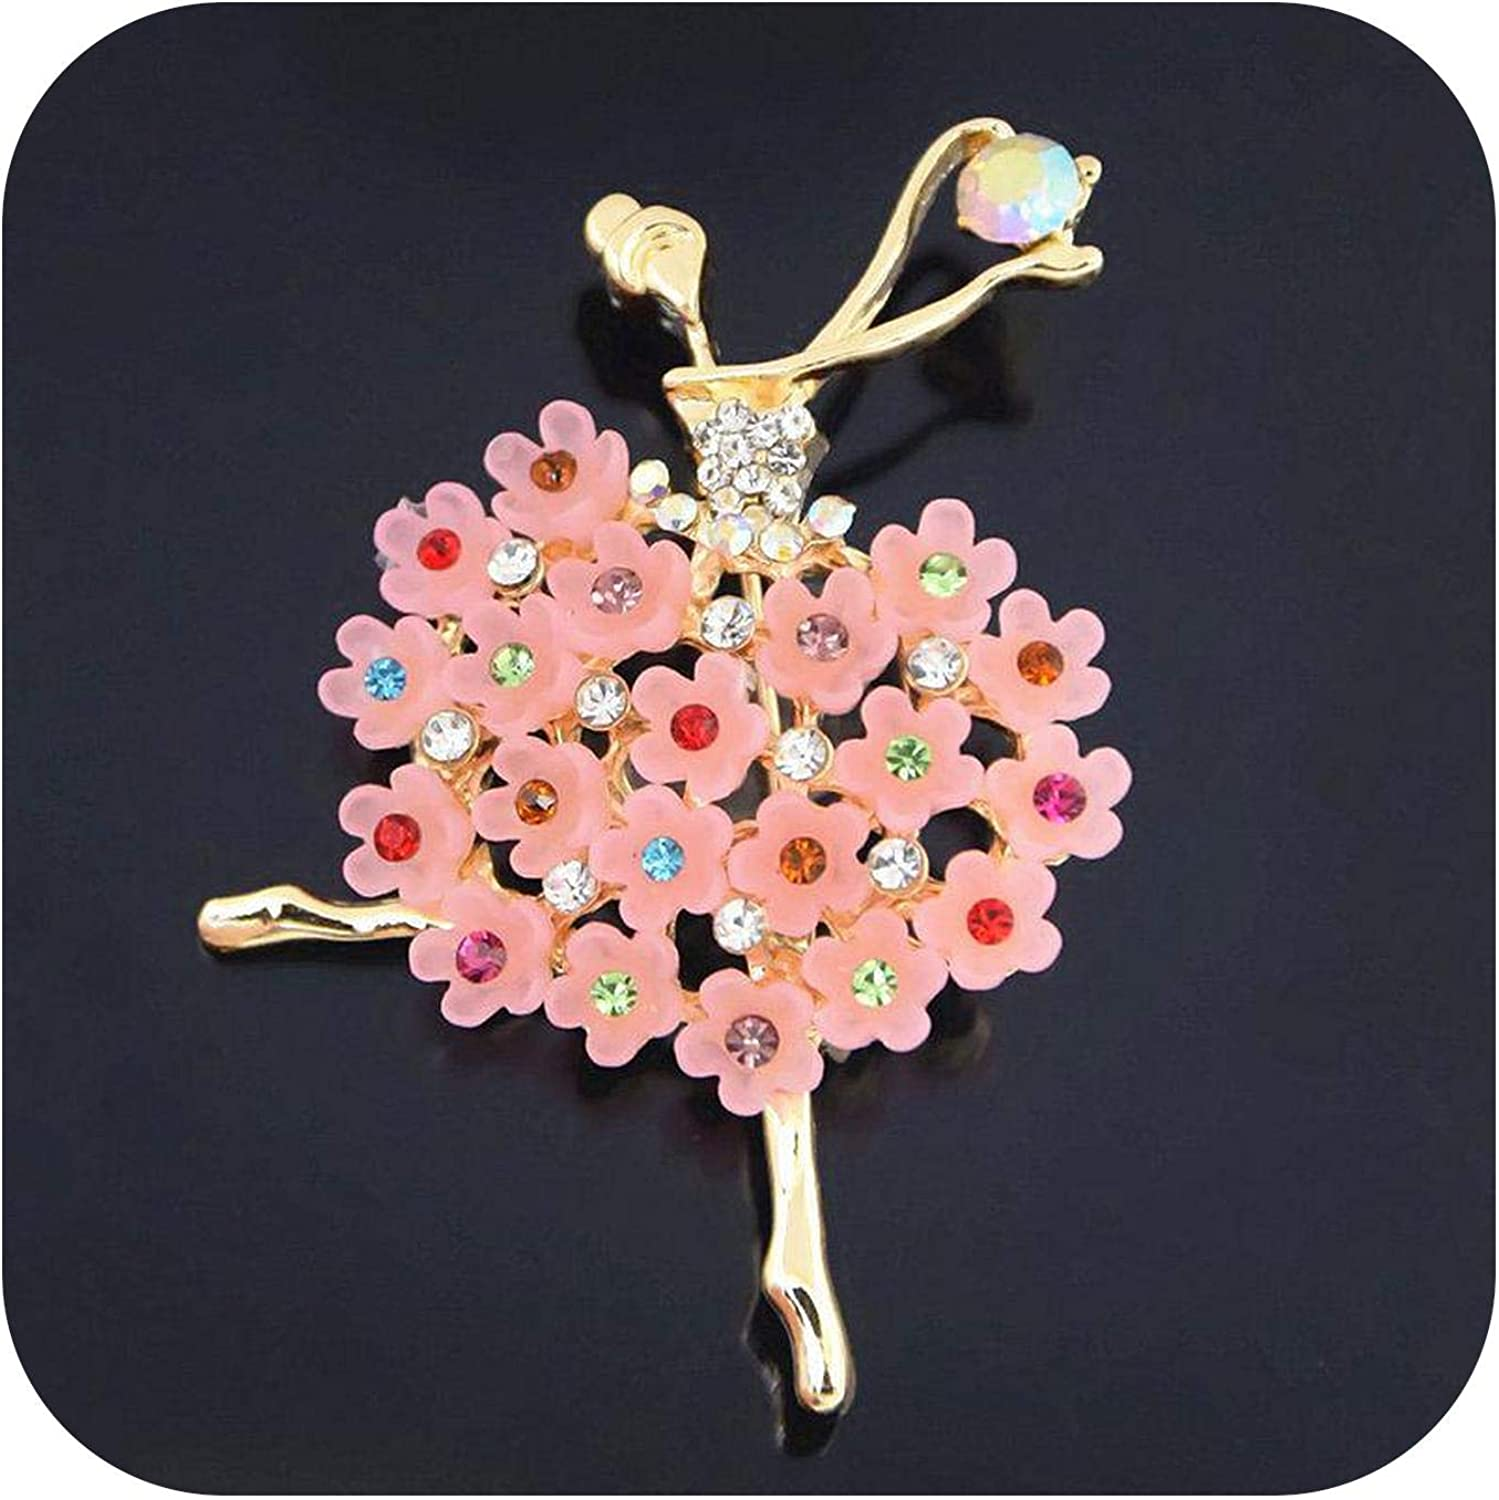 Chllrg Womens Brooches Rhinestones Crystal Crown Large Flower Bridal Brooch Pin Wedding Fashion Jewelry Decoration broches